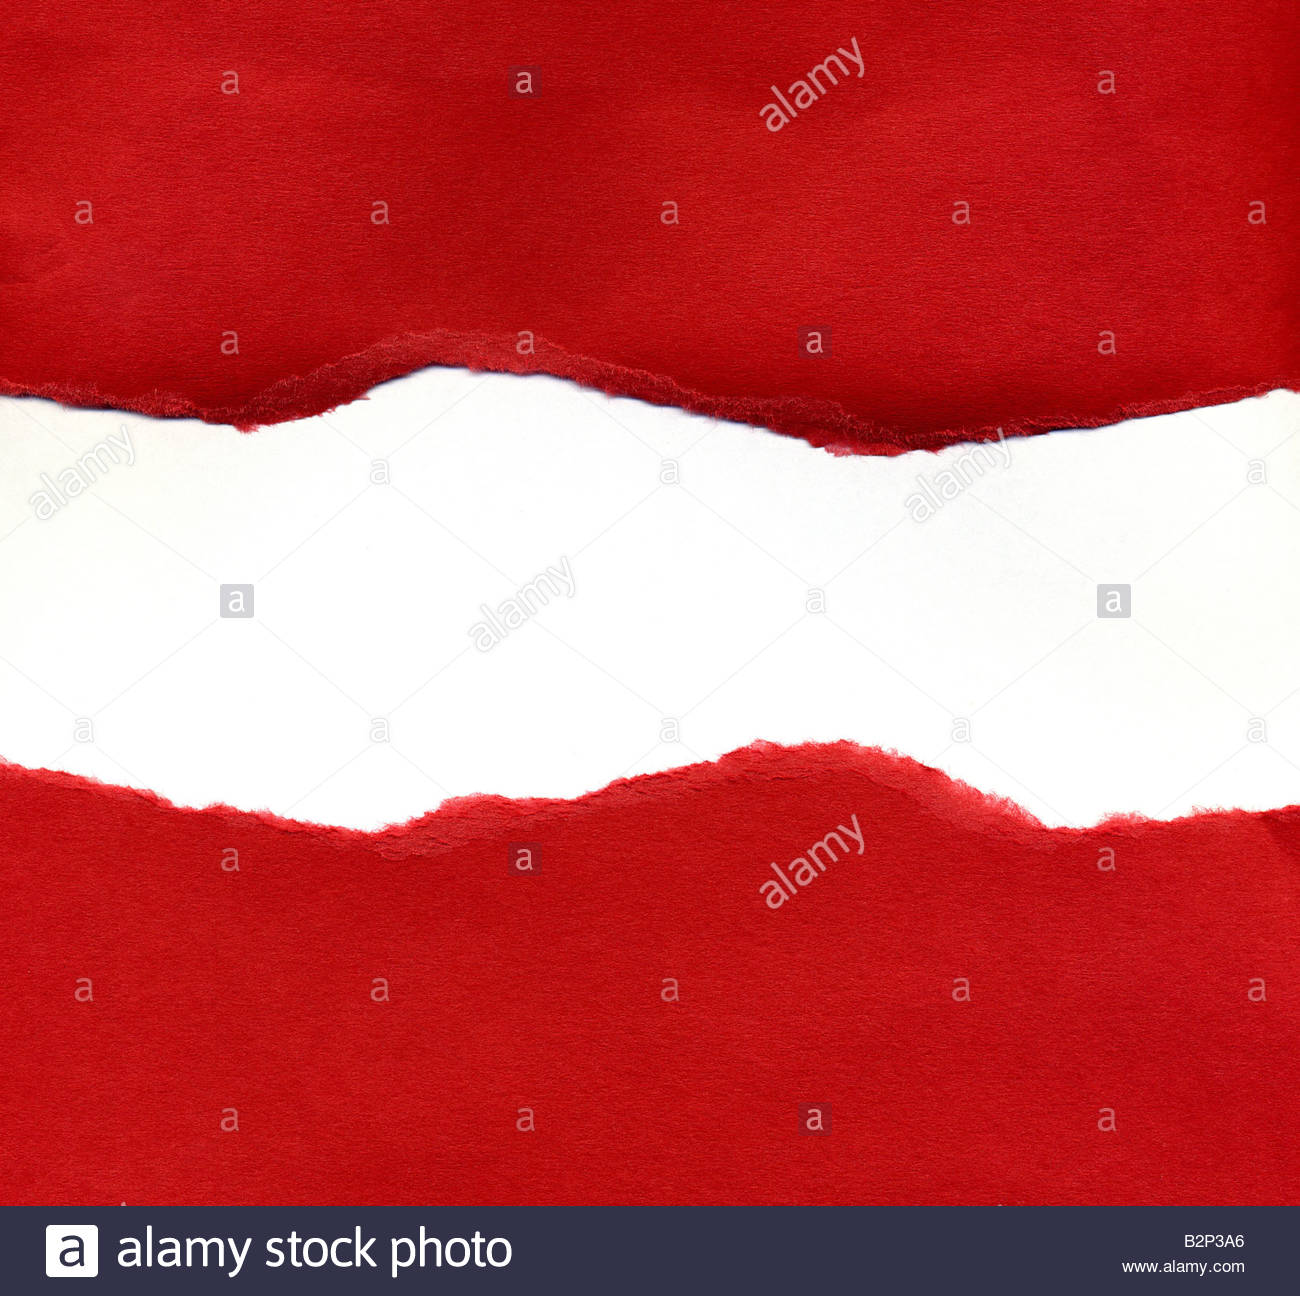 Red Torn Paper Revealing a White Background Texture perfect for advertising your sale time bargains - Stock Image